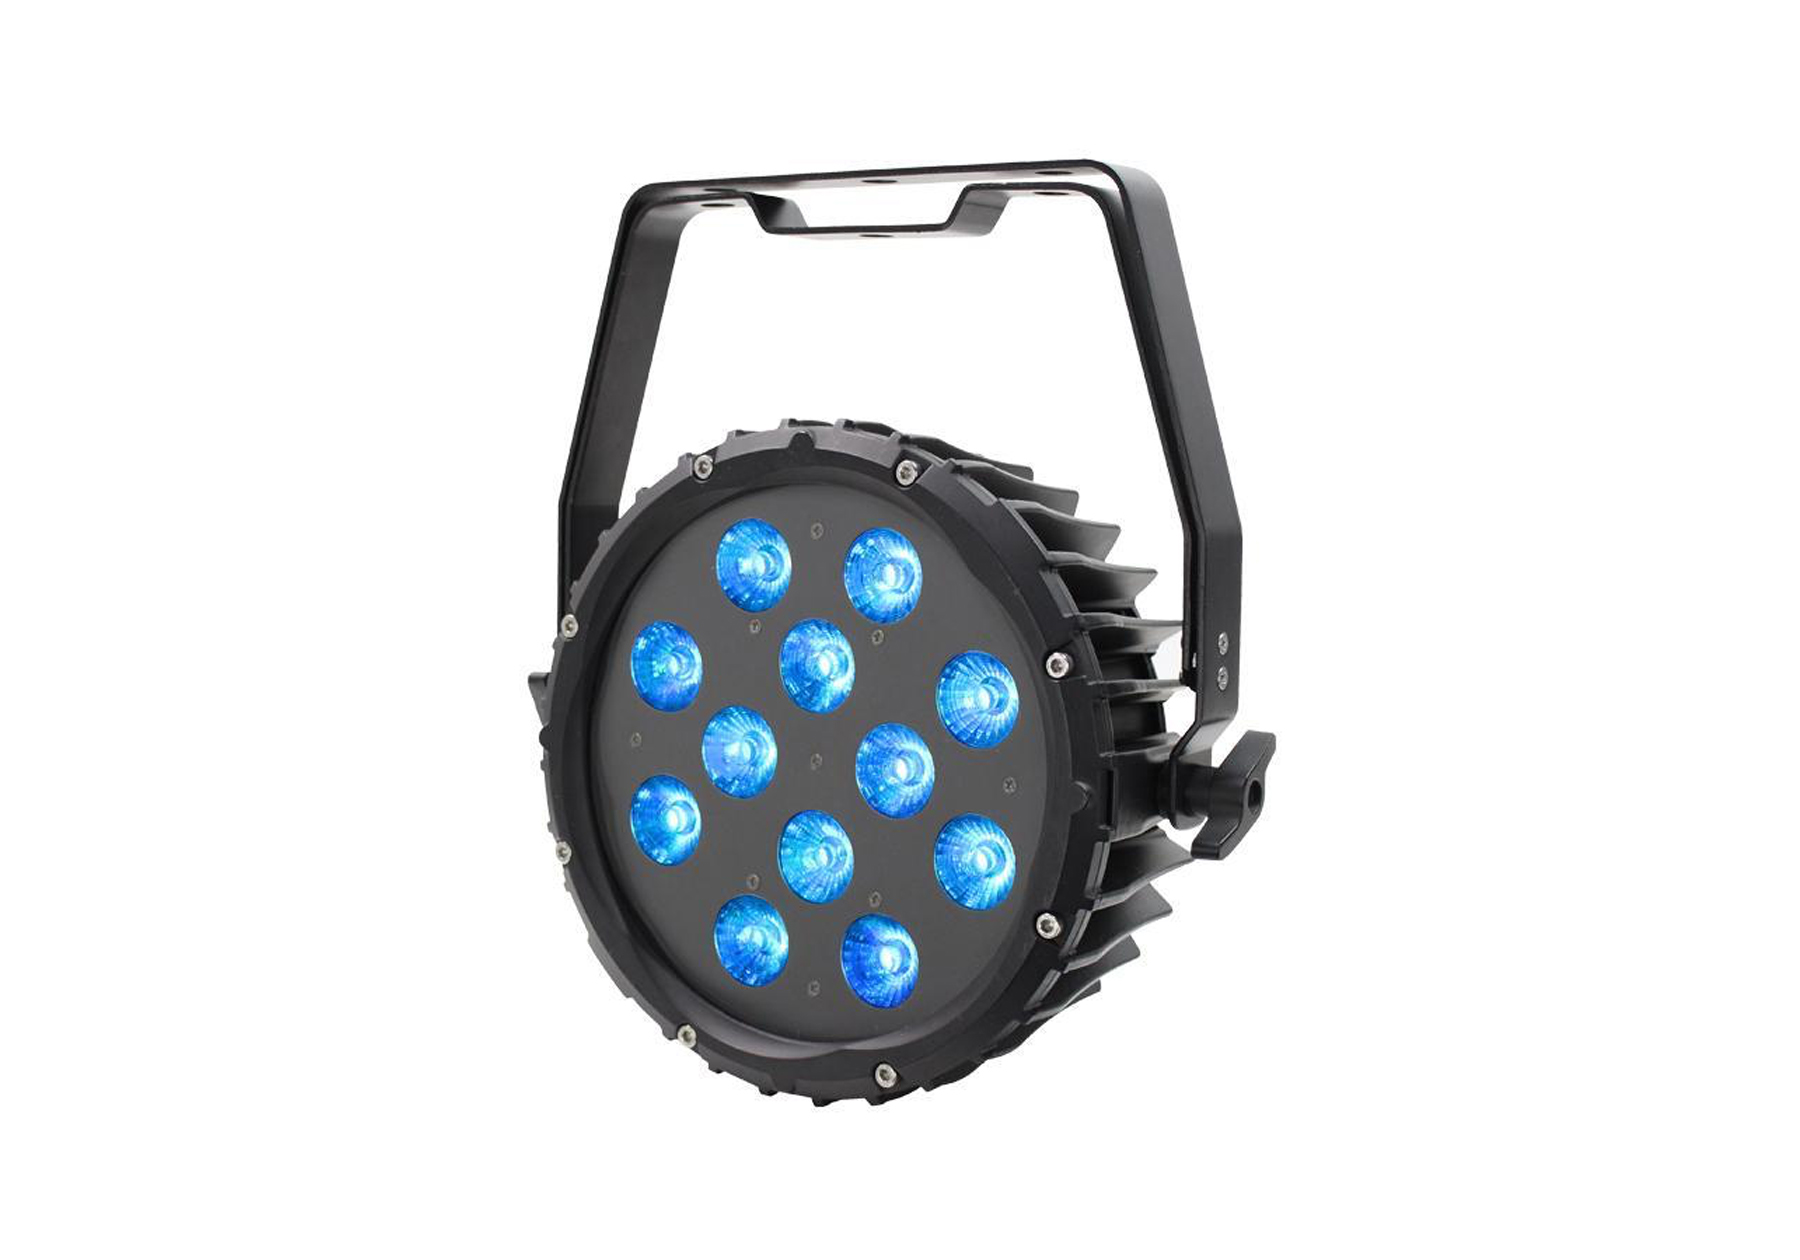 Hire LED lighting fixtures, PAR cans, LED pixel mapping battens, LED floods in Cardiff, Swansea, Newport, Carmarthenshire, Pembrokeshire & South West Wales